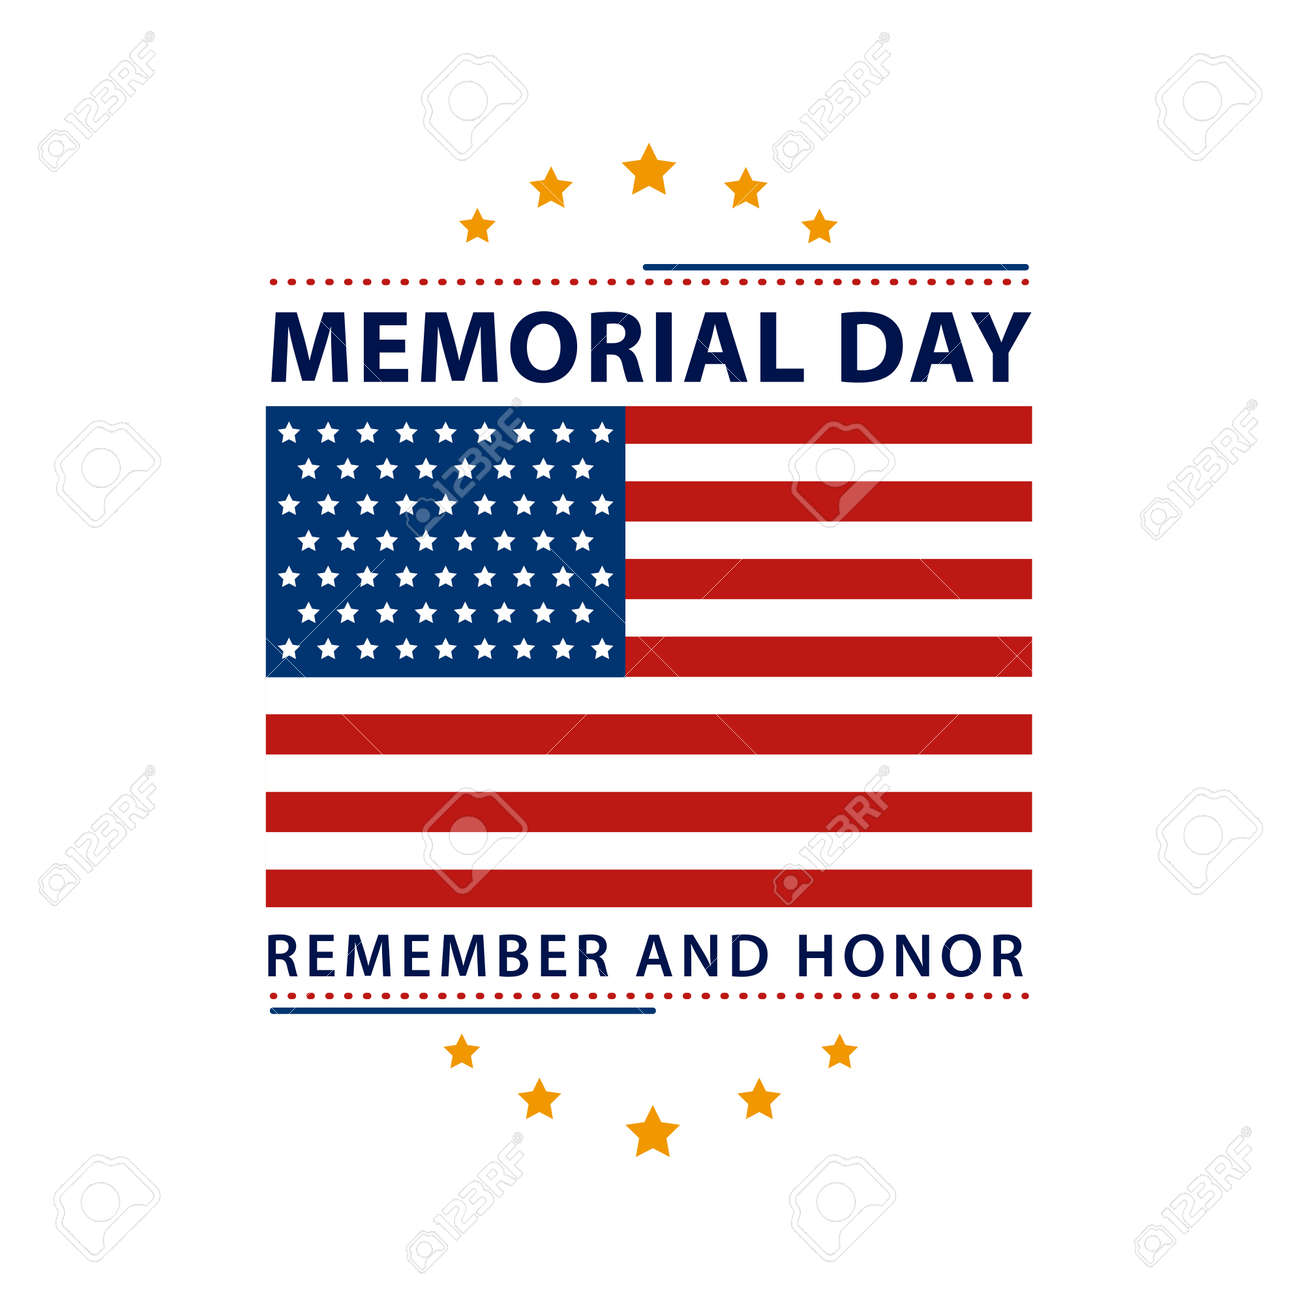 memorial day label with flag - 166496364